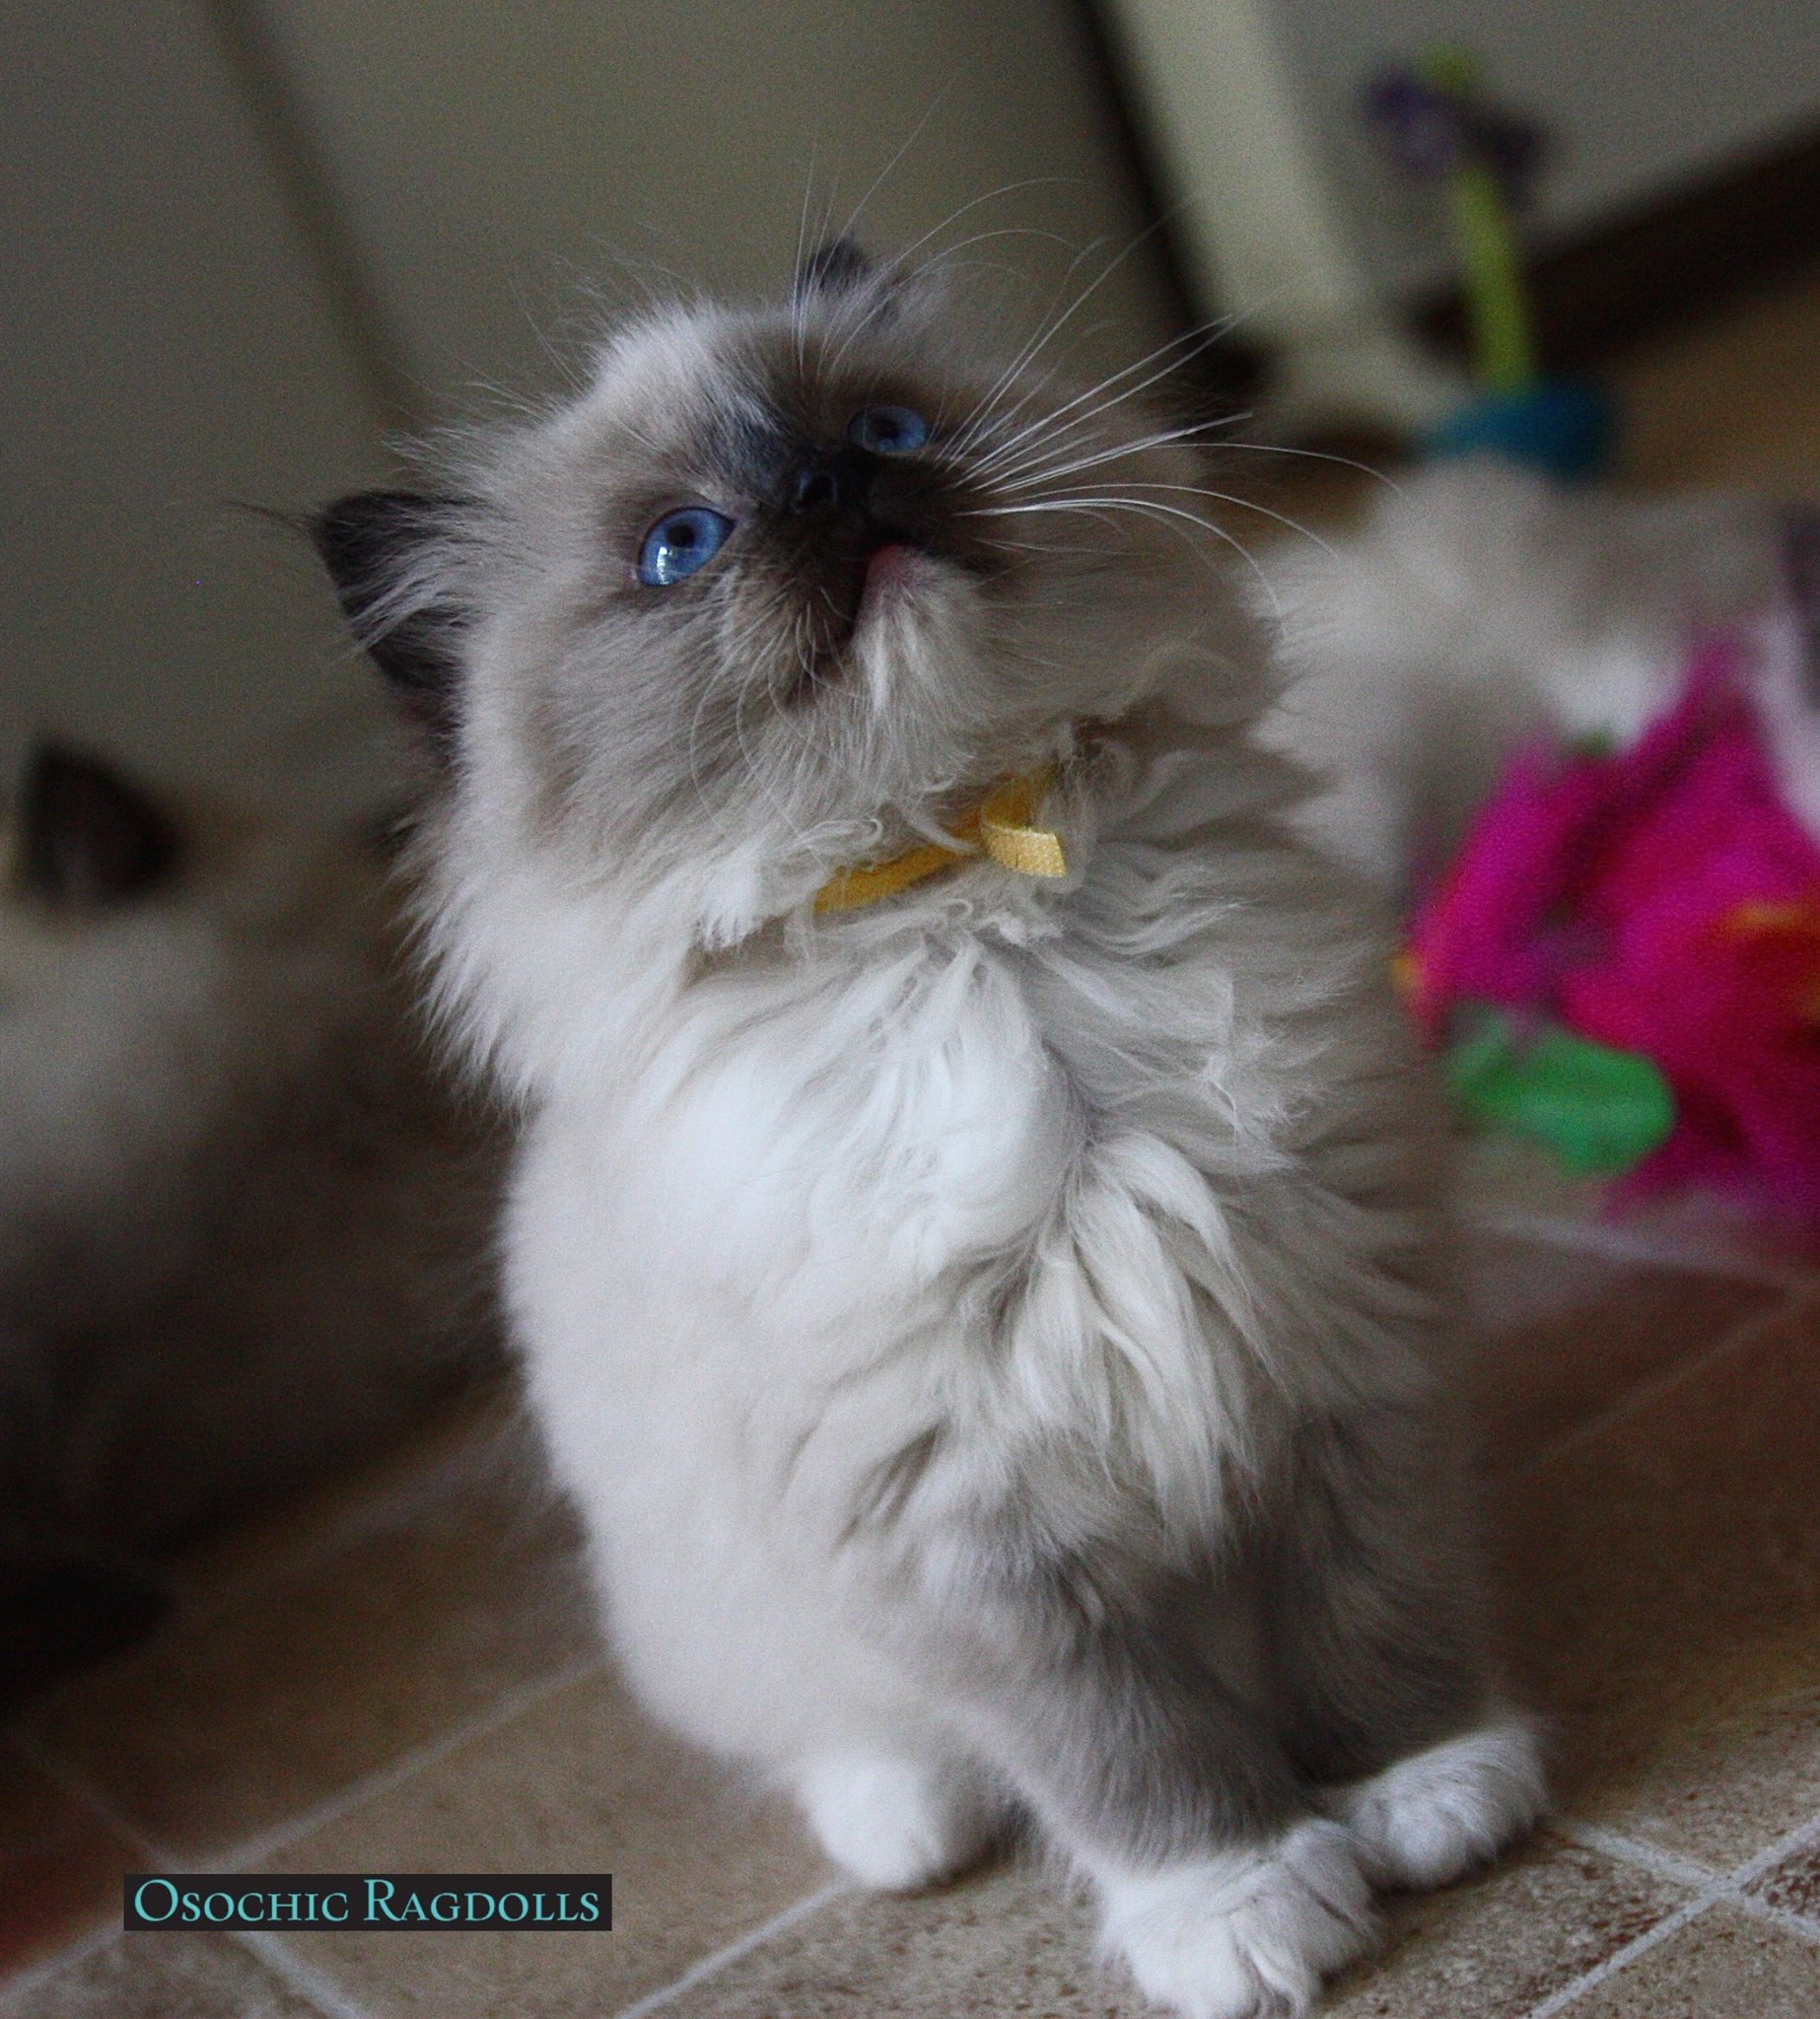 Ragdoll Kittens for sale in Devon http://osochicragdolls.co.uk